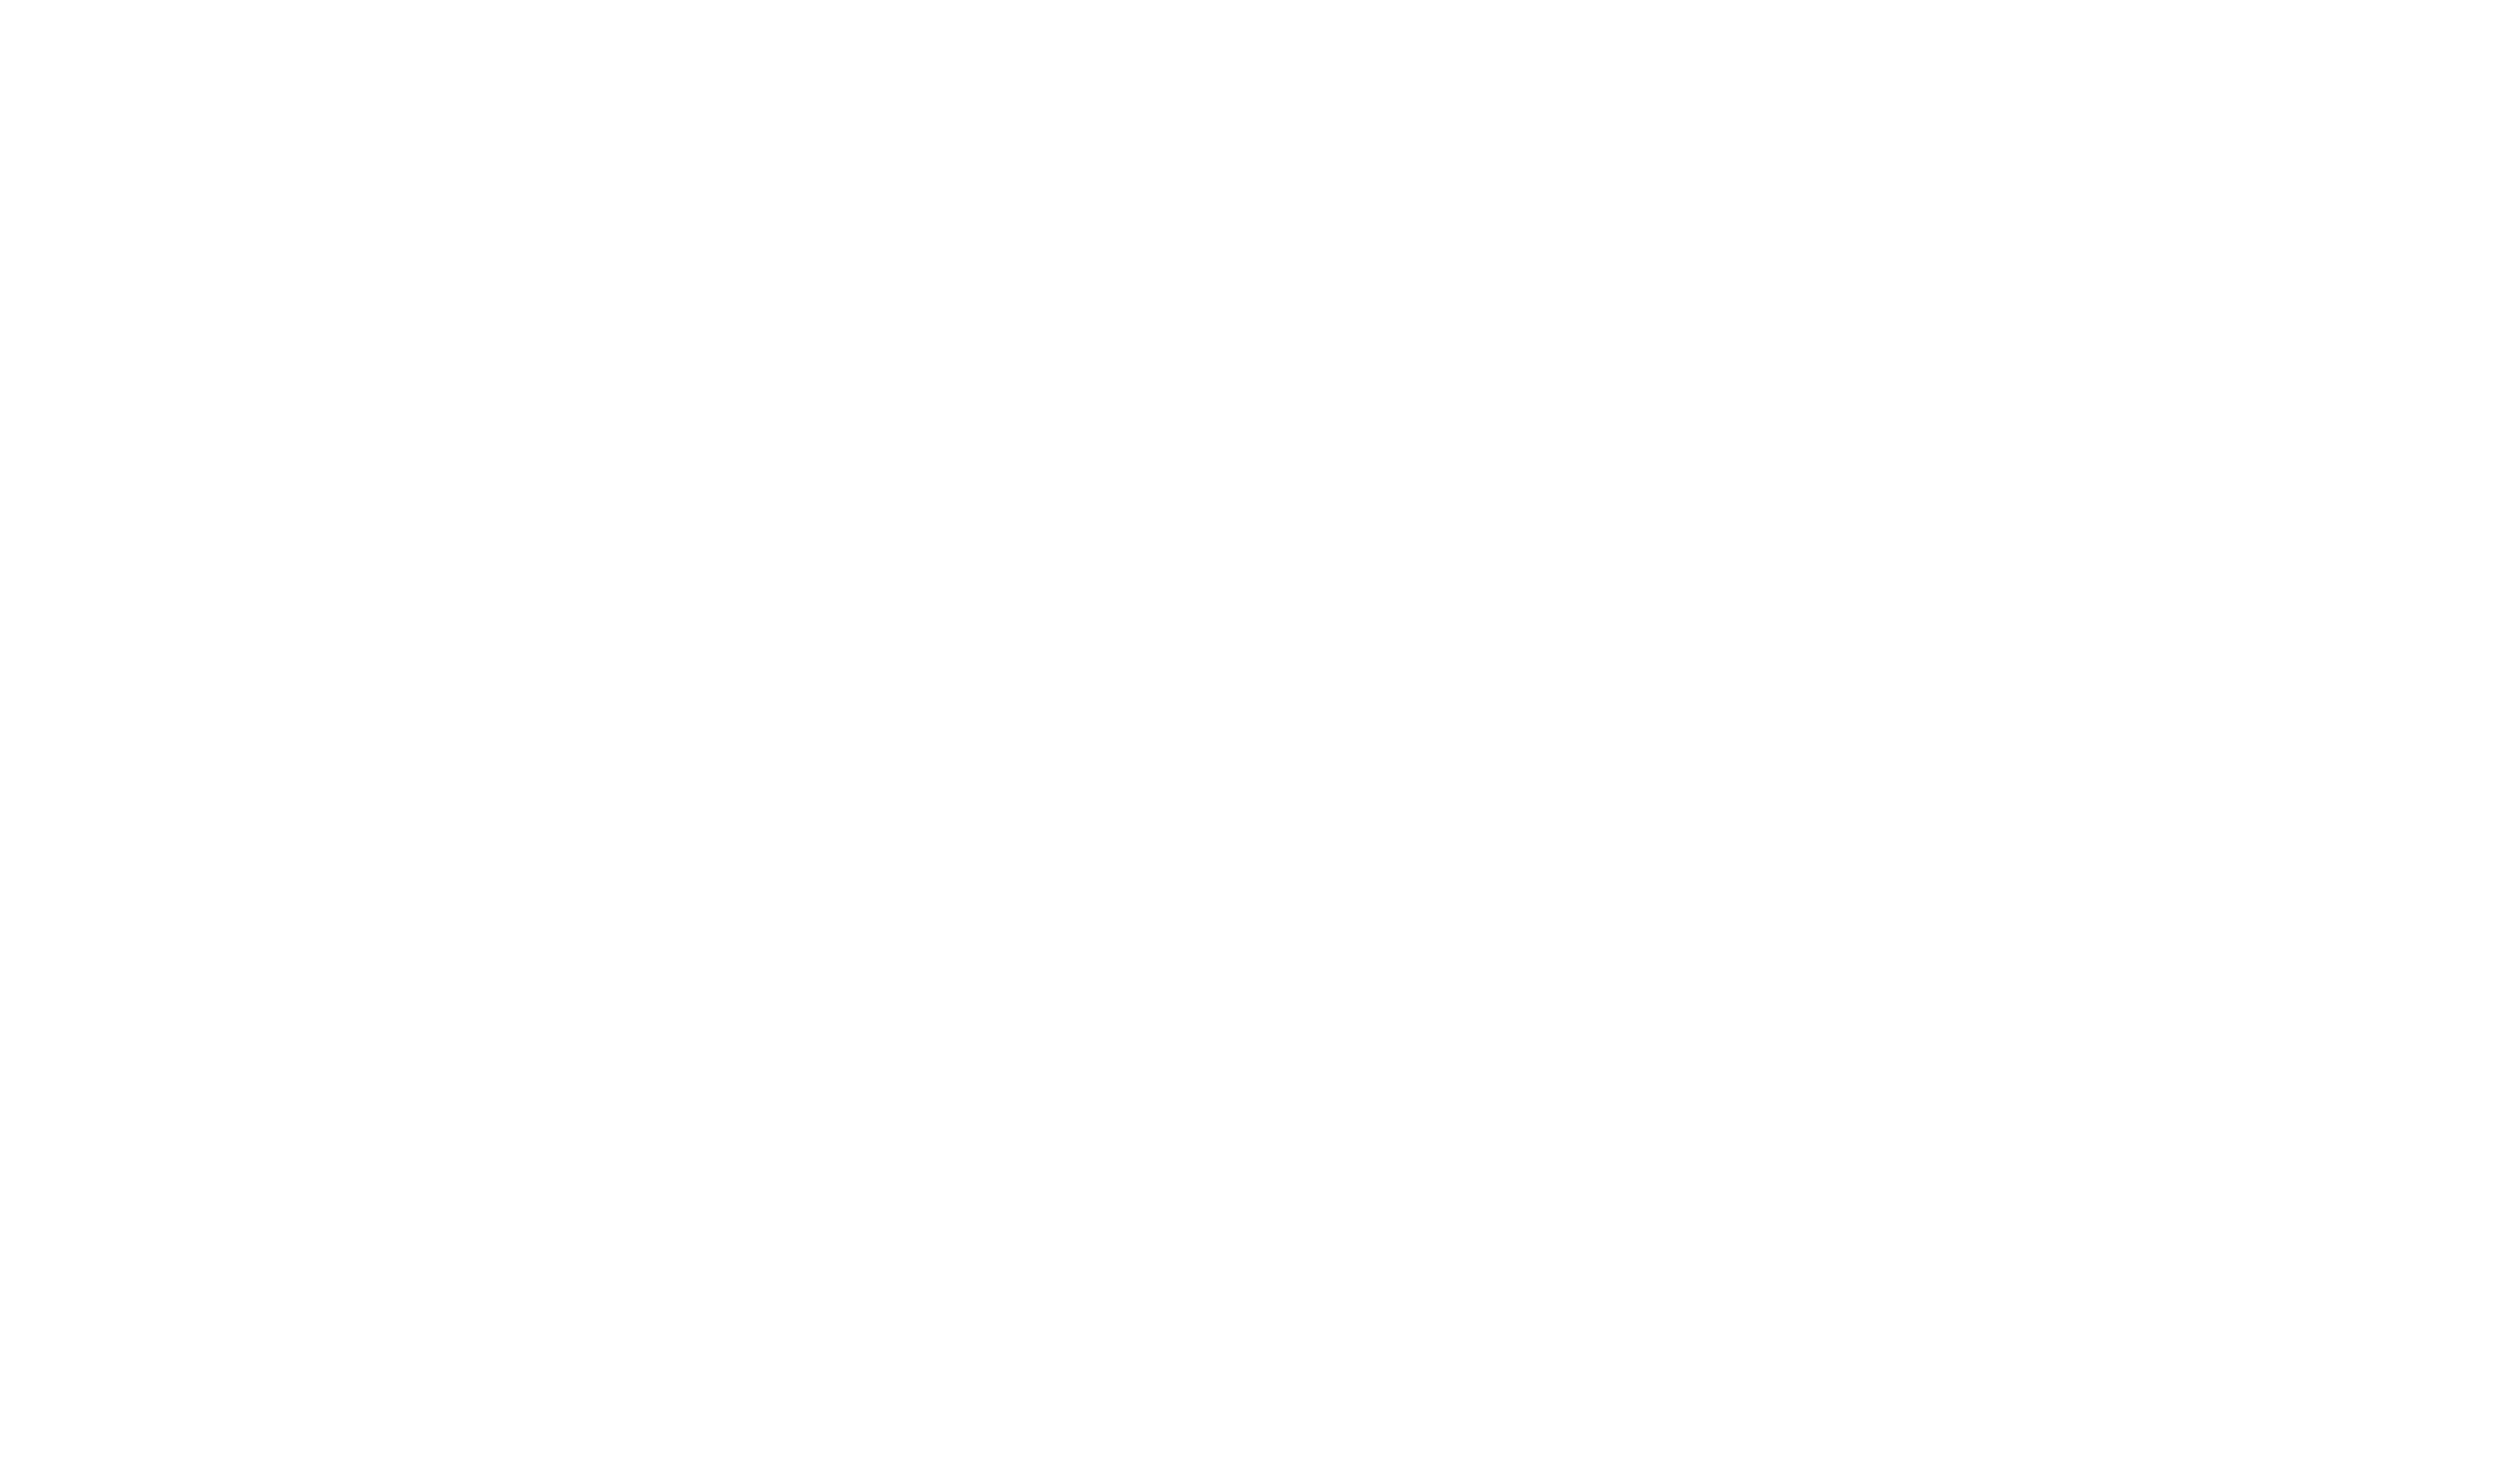 Inspirant Group